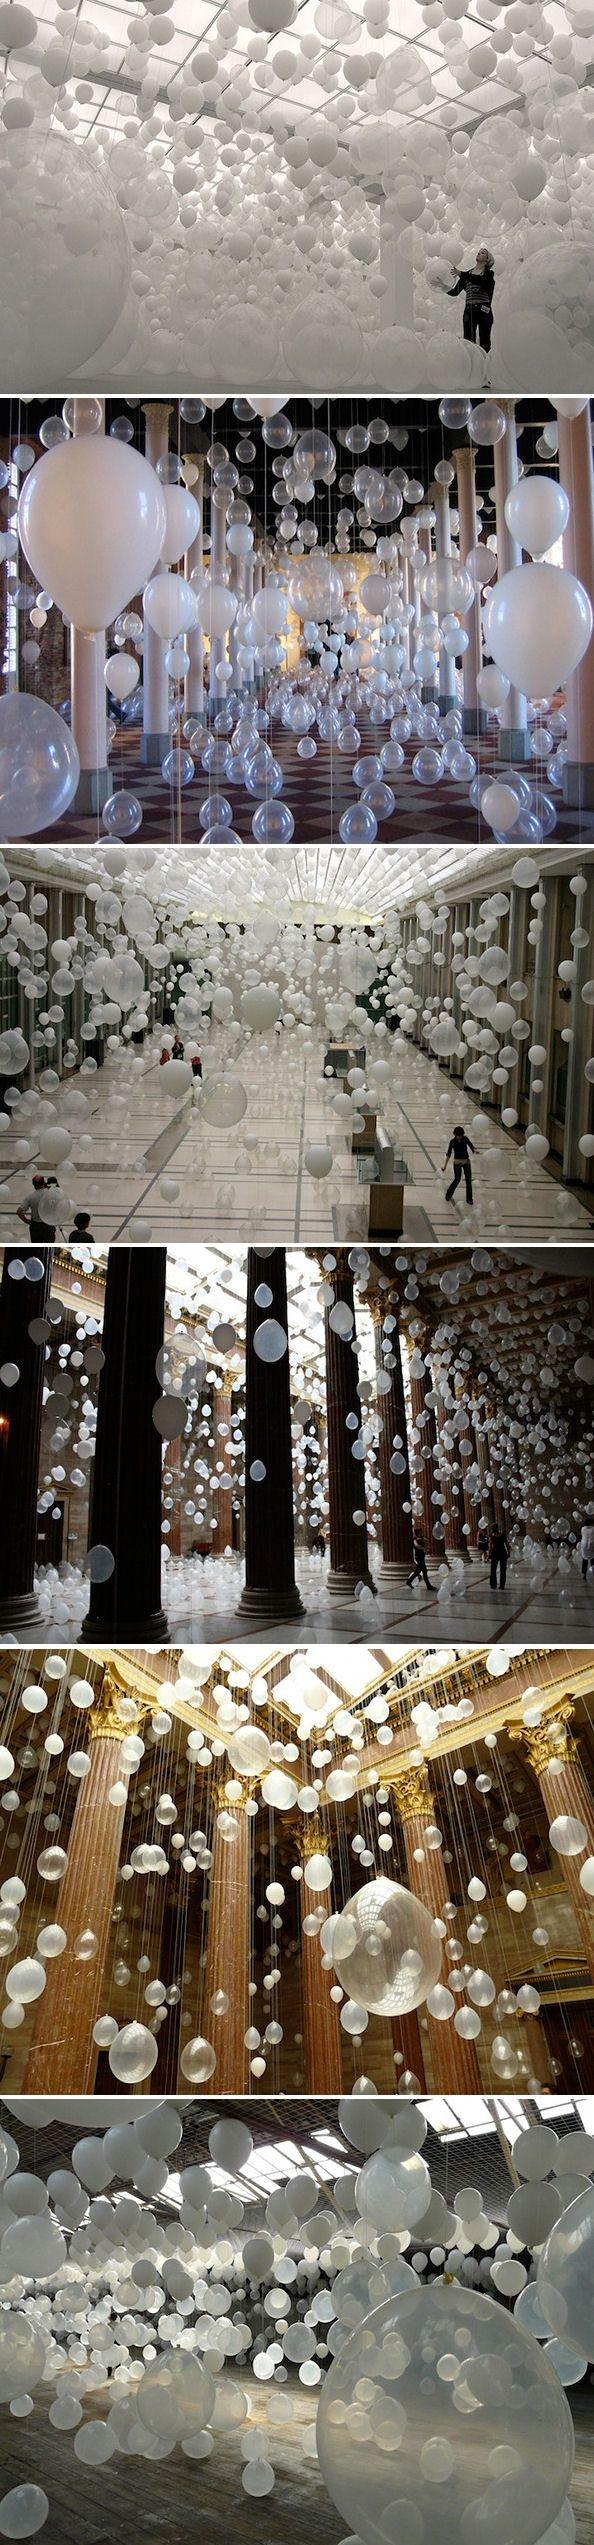 "William Forsythe: Scattered Crowds (2012). Thousands of white balloons are suspended in the air, accompanied by a wash of music, emphasising ""the air-borne landscape of relationships, distance, of humans and emptiness, of coalescence and decision"".:"